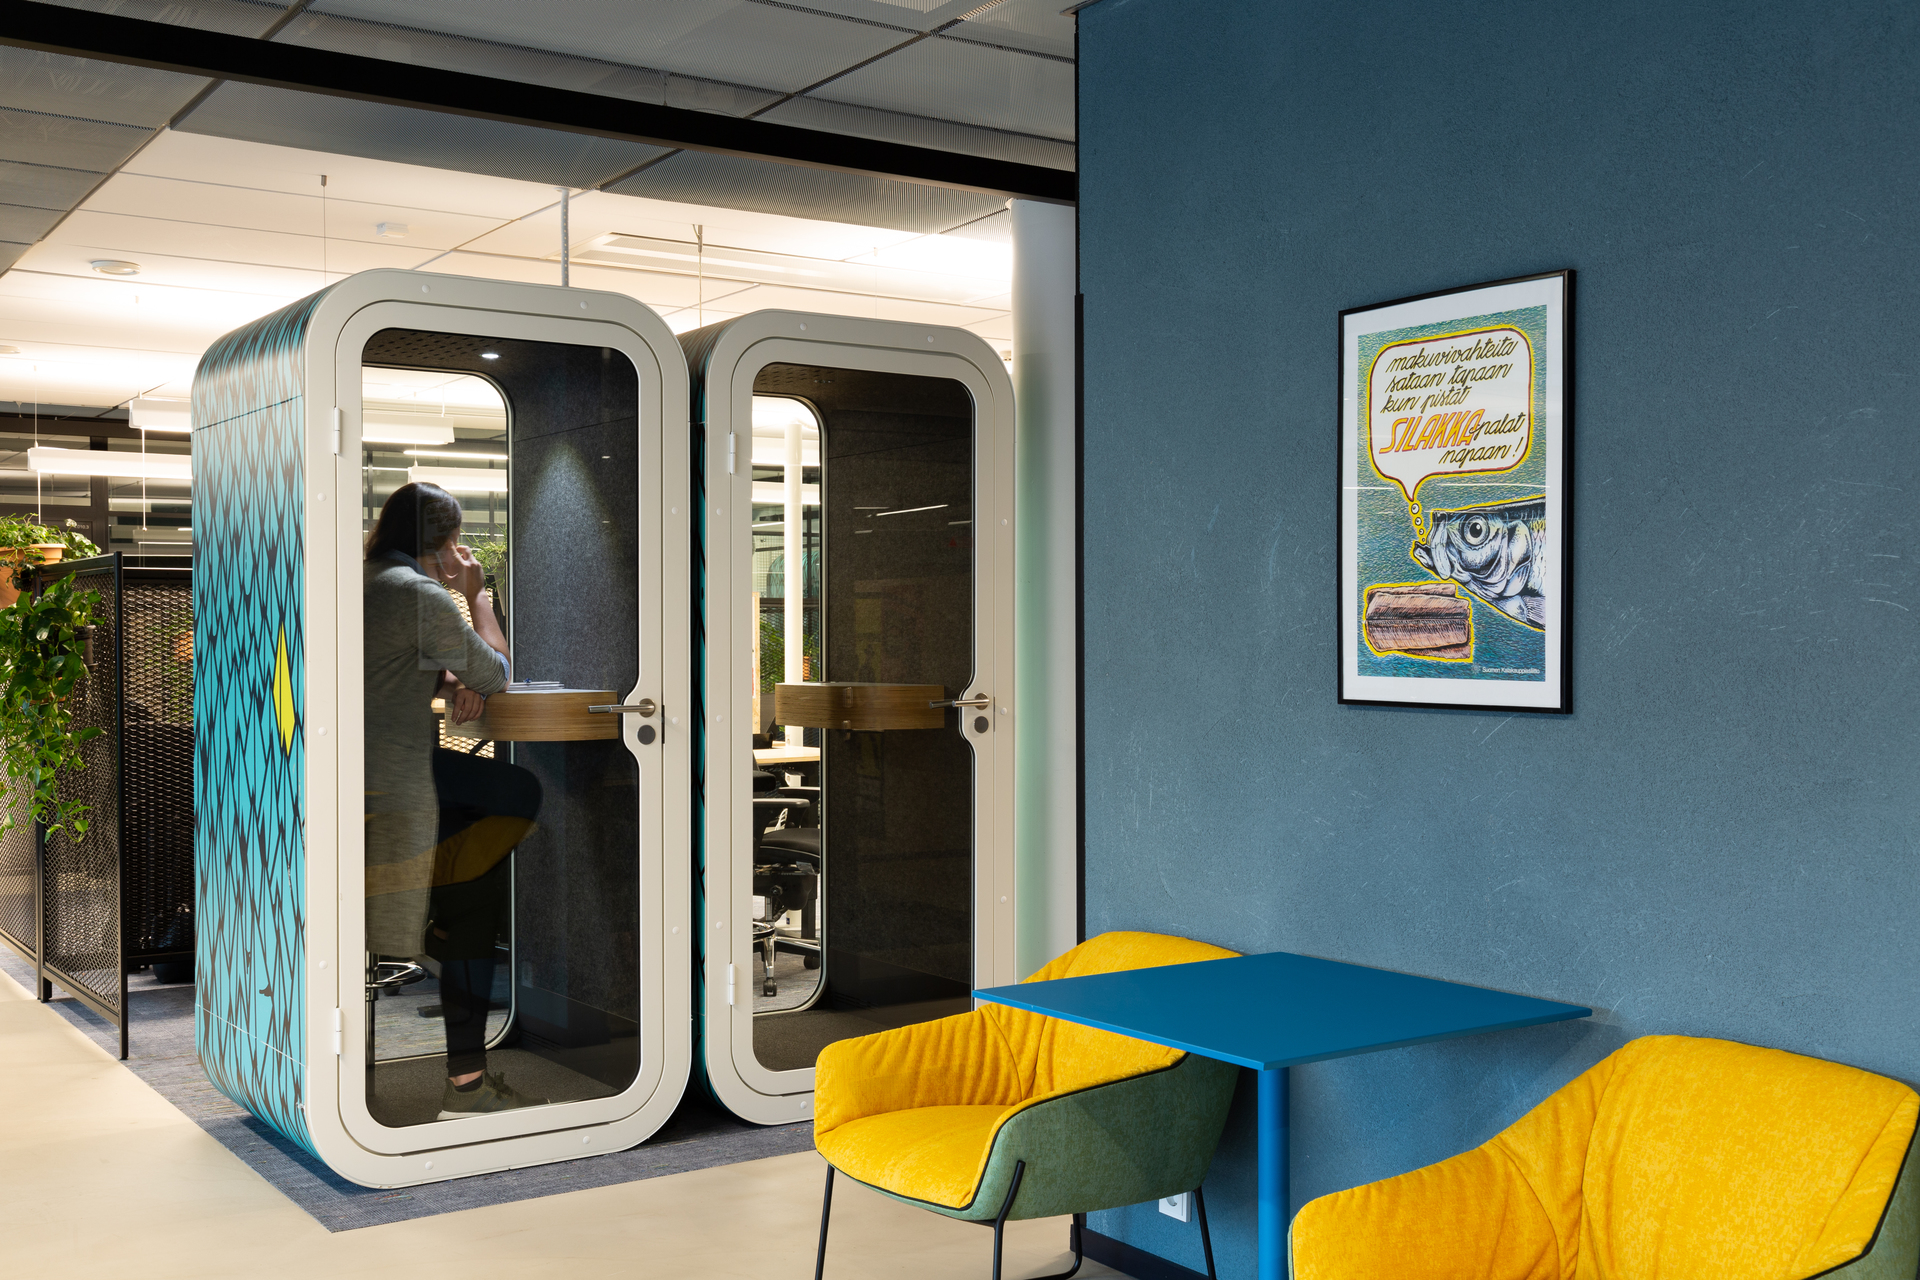 Framery's Framery O office pod can be put in different areas throughout your interior spaces due to its versatile design and look.